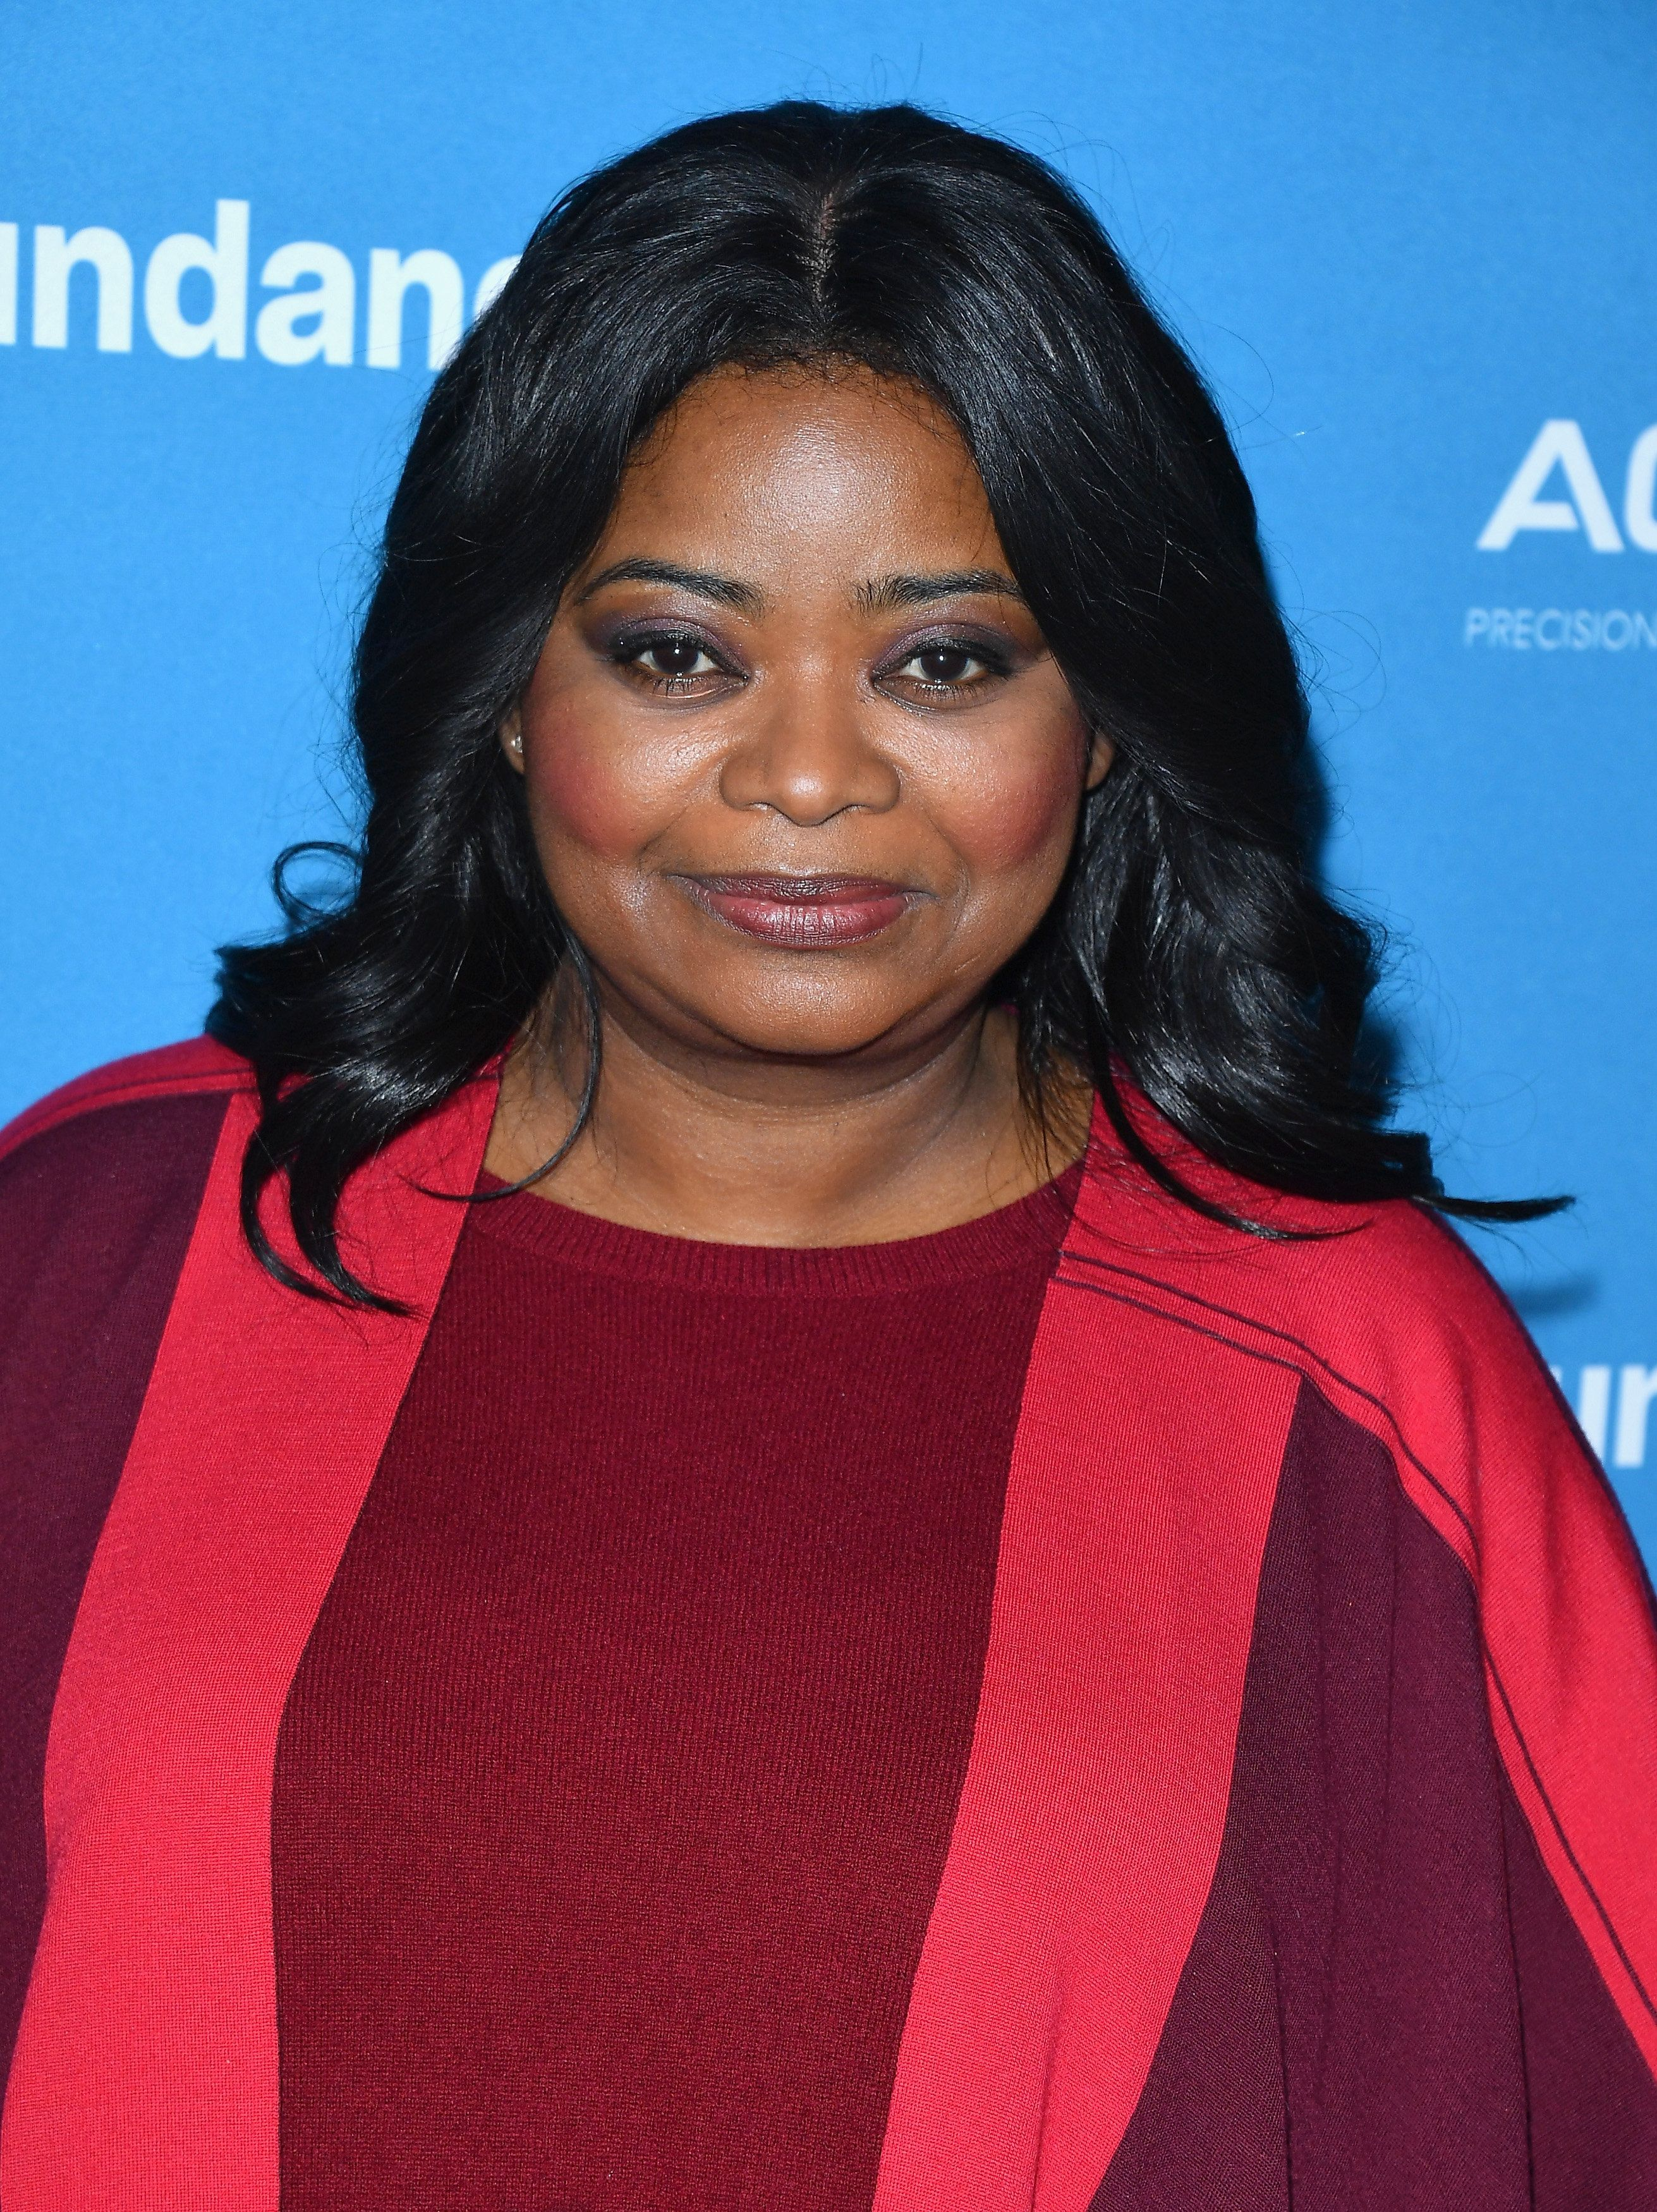 PARK CITY, UT - JANUARY 27:  Actress Octavia Spencer attends the 'Luce' Premiere during the 2019 Sundance Film Festival  at Library Center Theater on January 27, 2019 in Park City, Utah.  (Photo by George Pimentel/Getty Images)